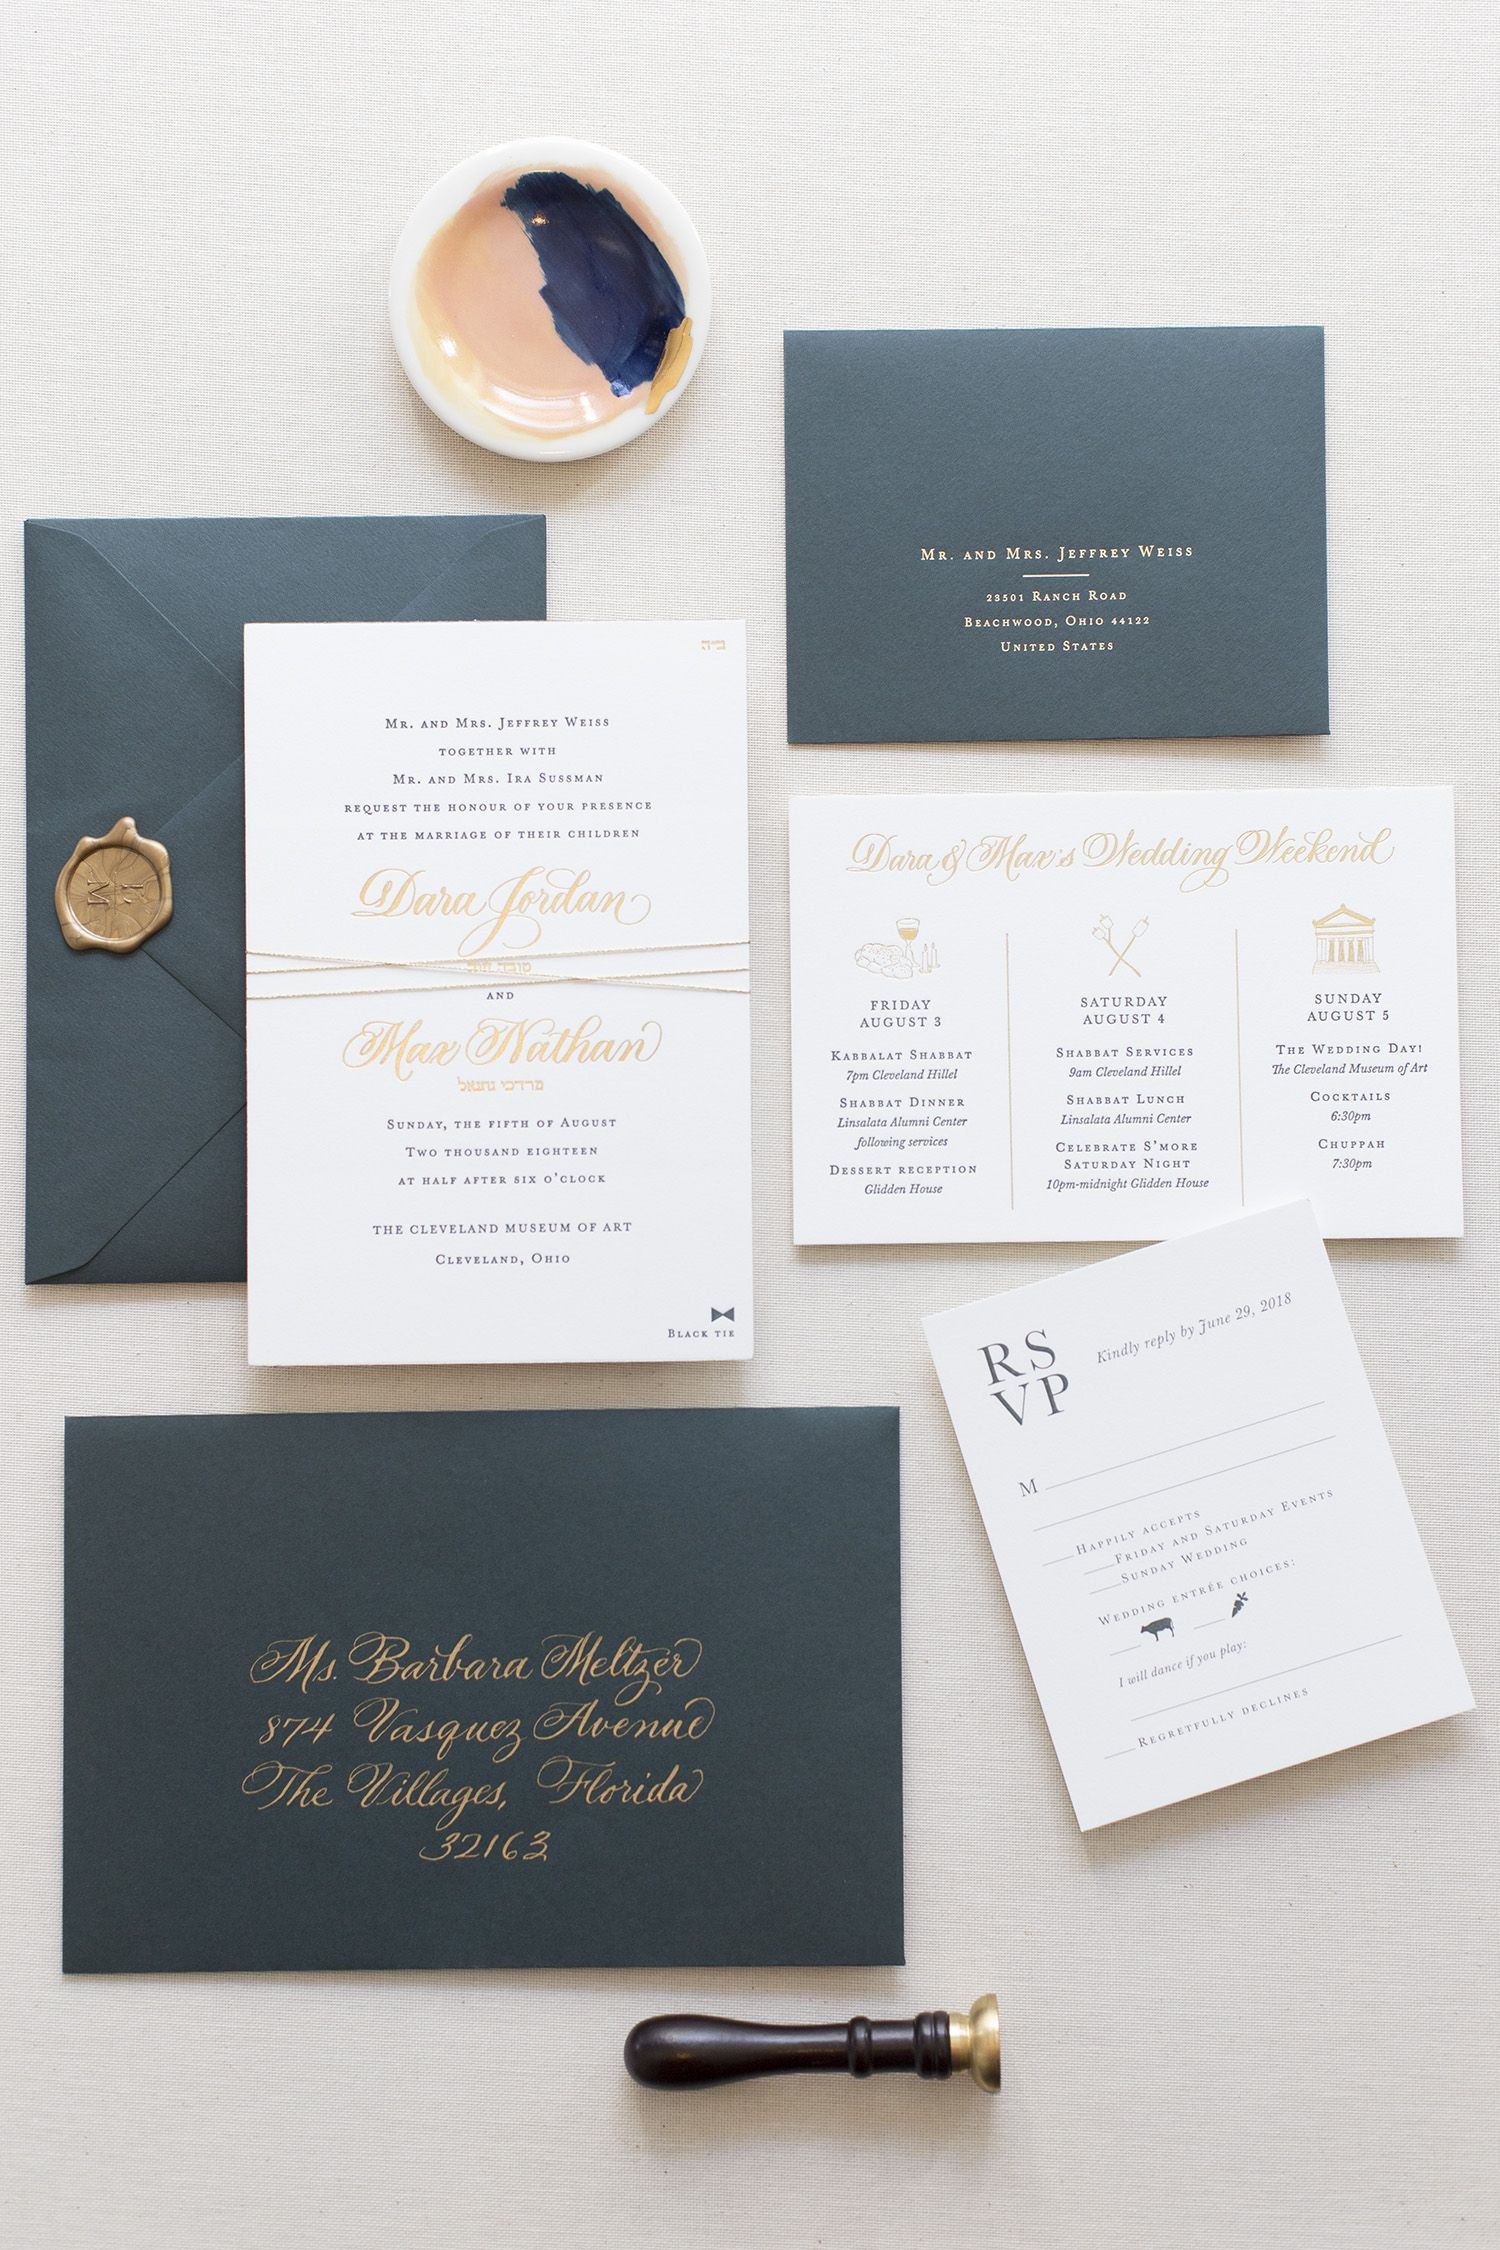 Fourteen Forty Is A Wedding Invitation Design Studio Located In New